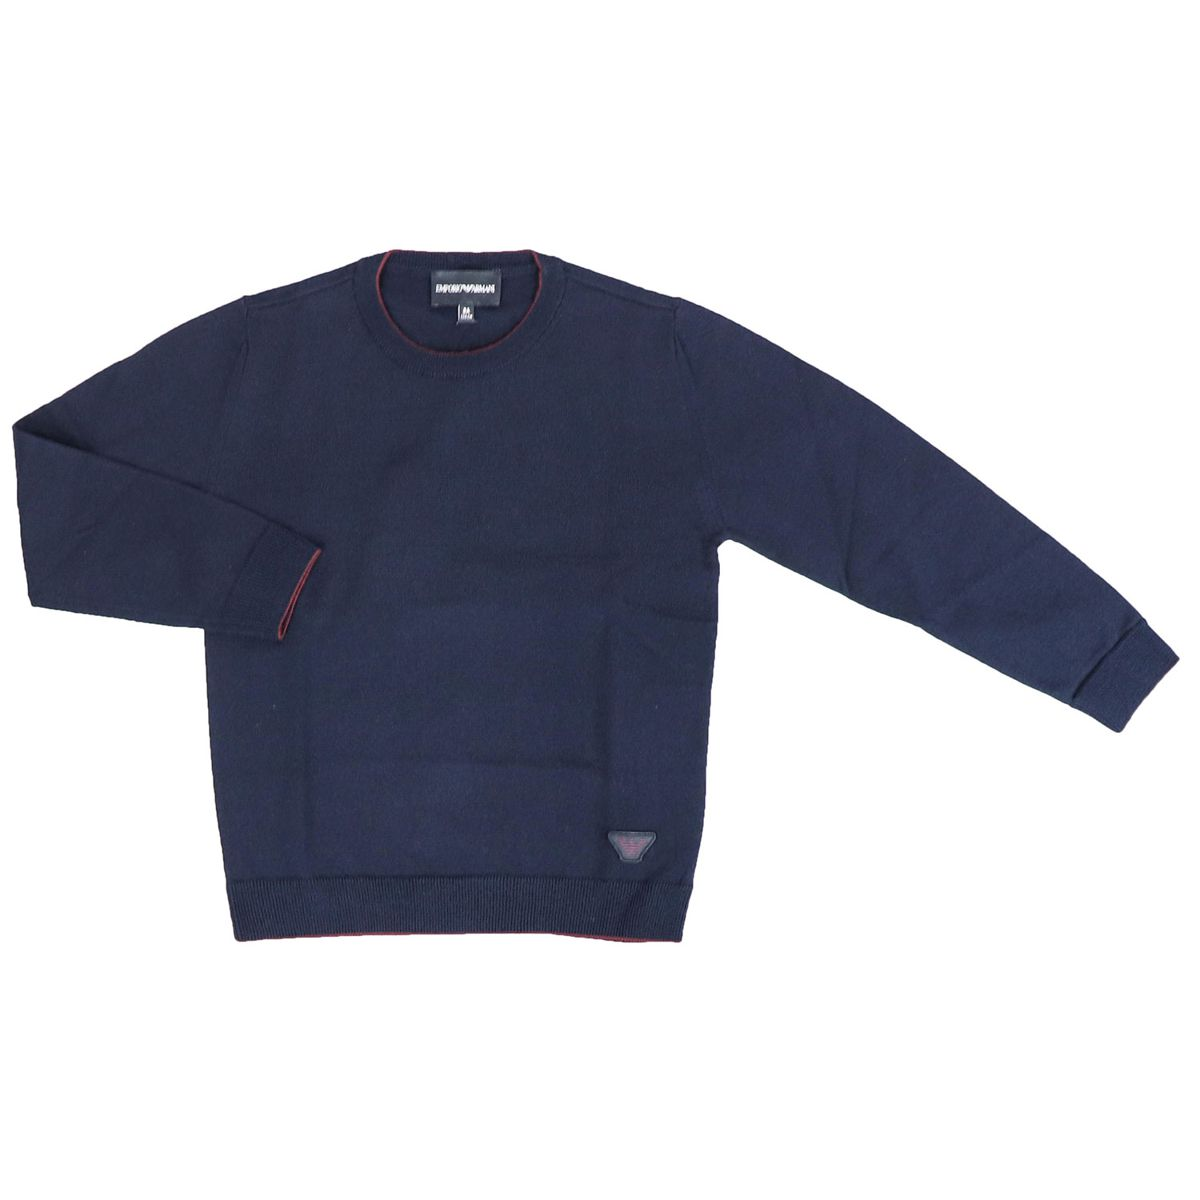 Crewneck sweater with contrasting edge and logo Blue Emporio Armani